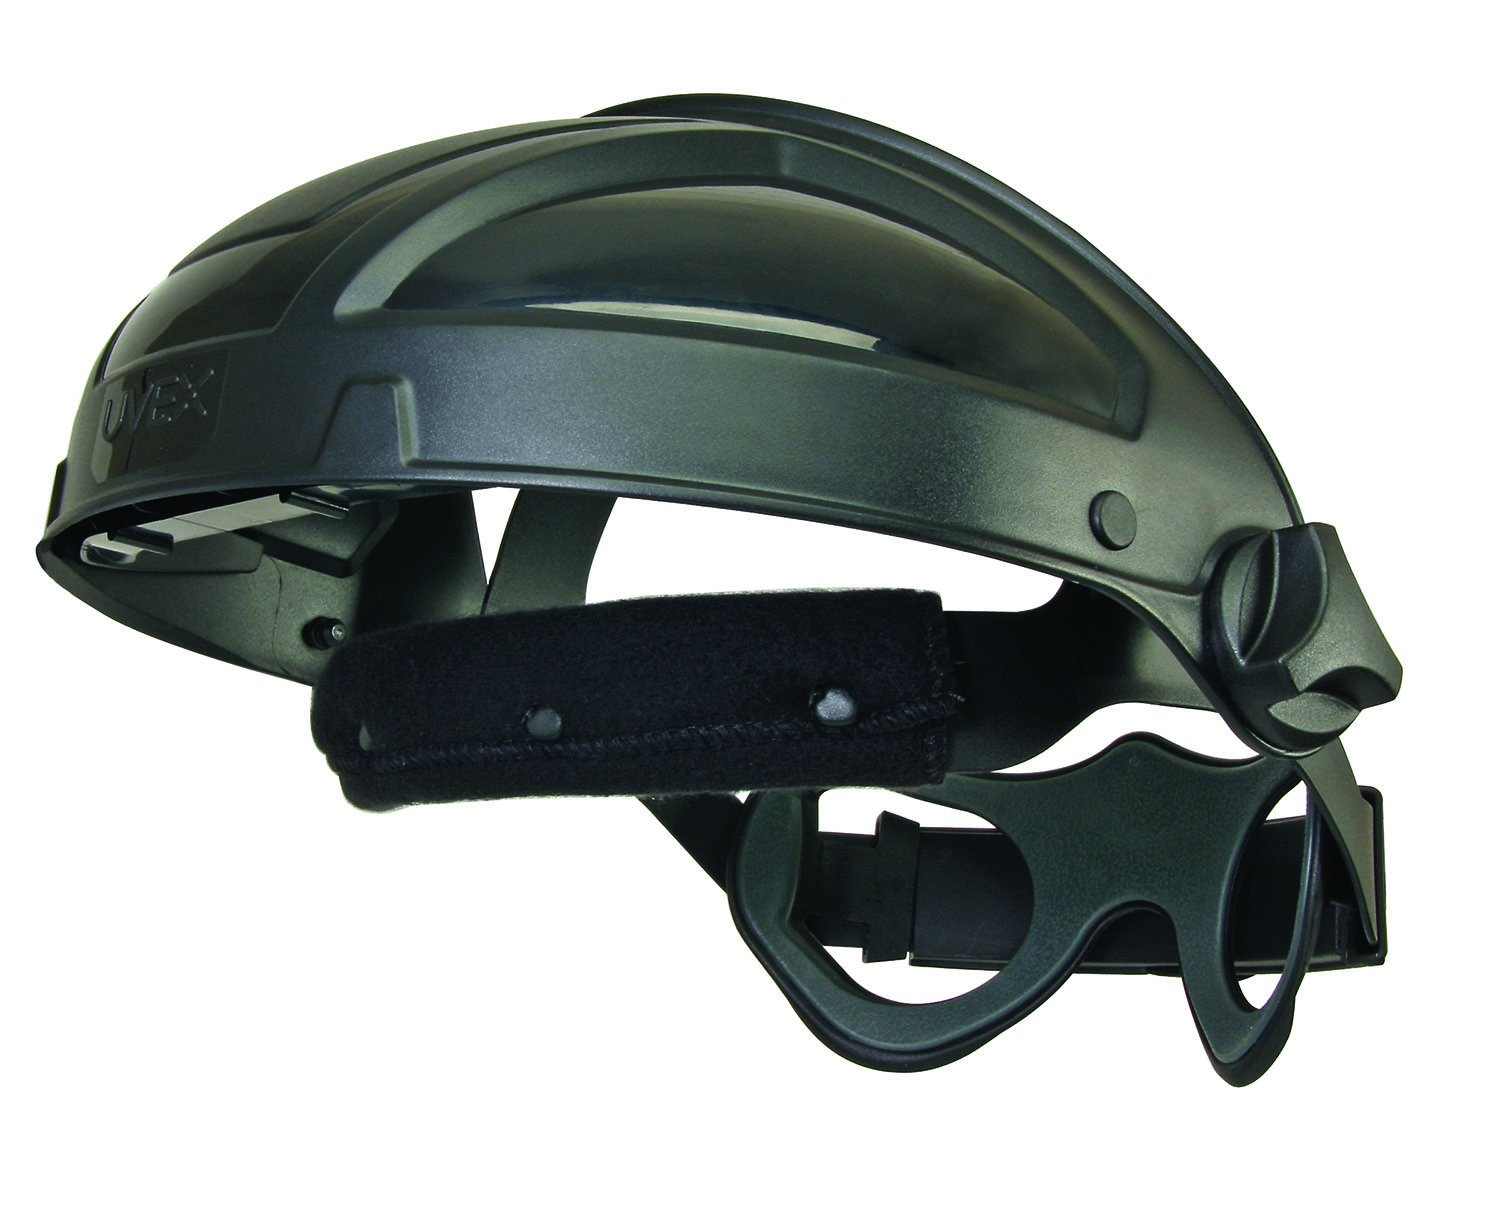 UVEX by Honeywell S9500 Uvex Turboshield Face Shield Headgear with Black Frame